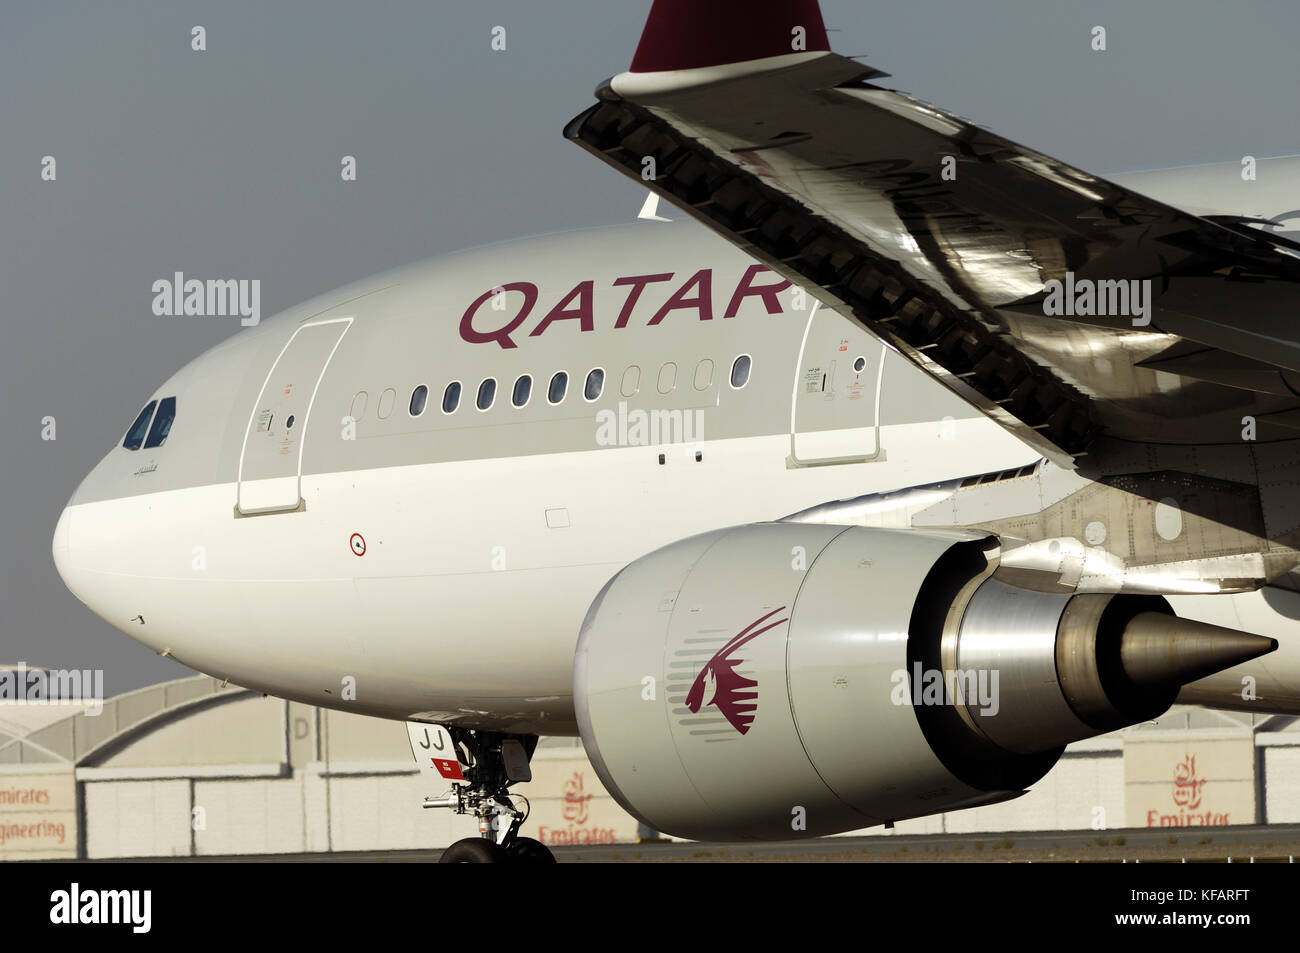 wing, engine and forward fuselage of a Qatar Airways Airbus A330-200 taxiing - Stock Image